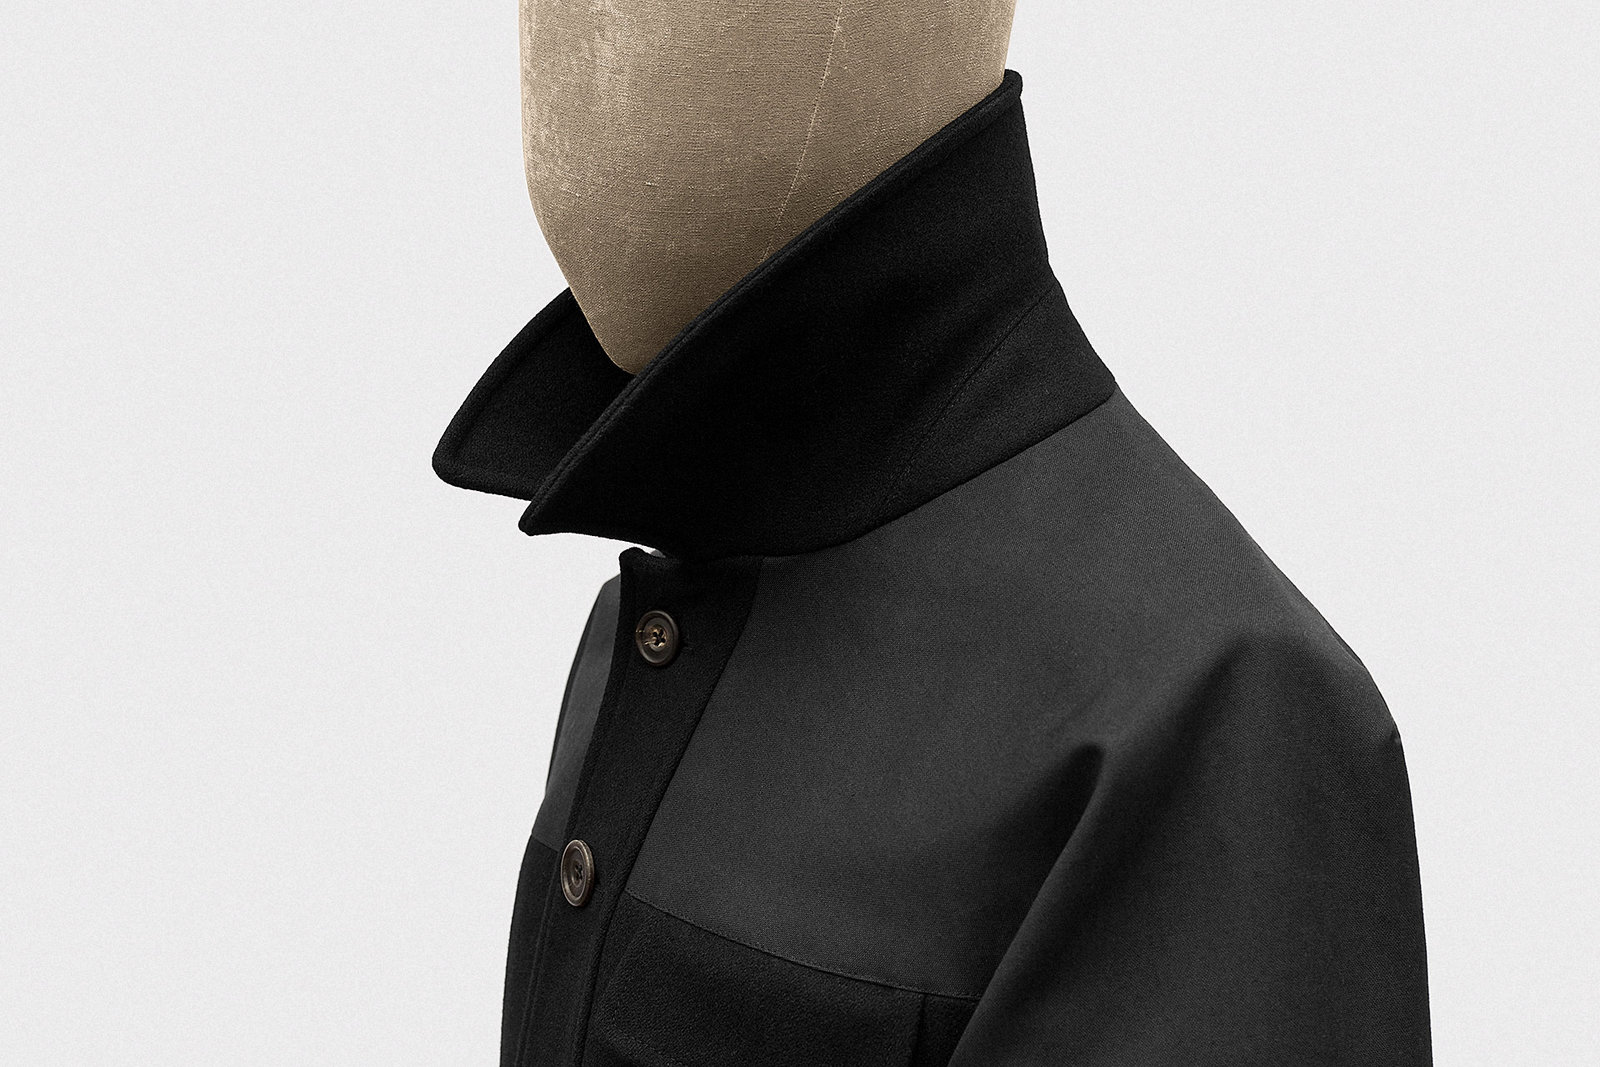 donkey-jacket-woollen-melton-cotton-black-4@2x.jpg